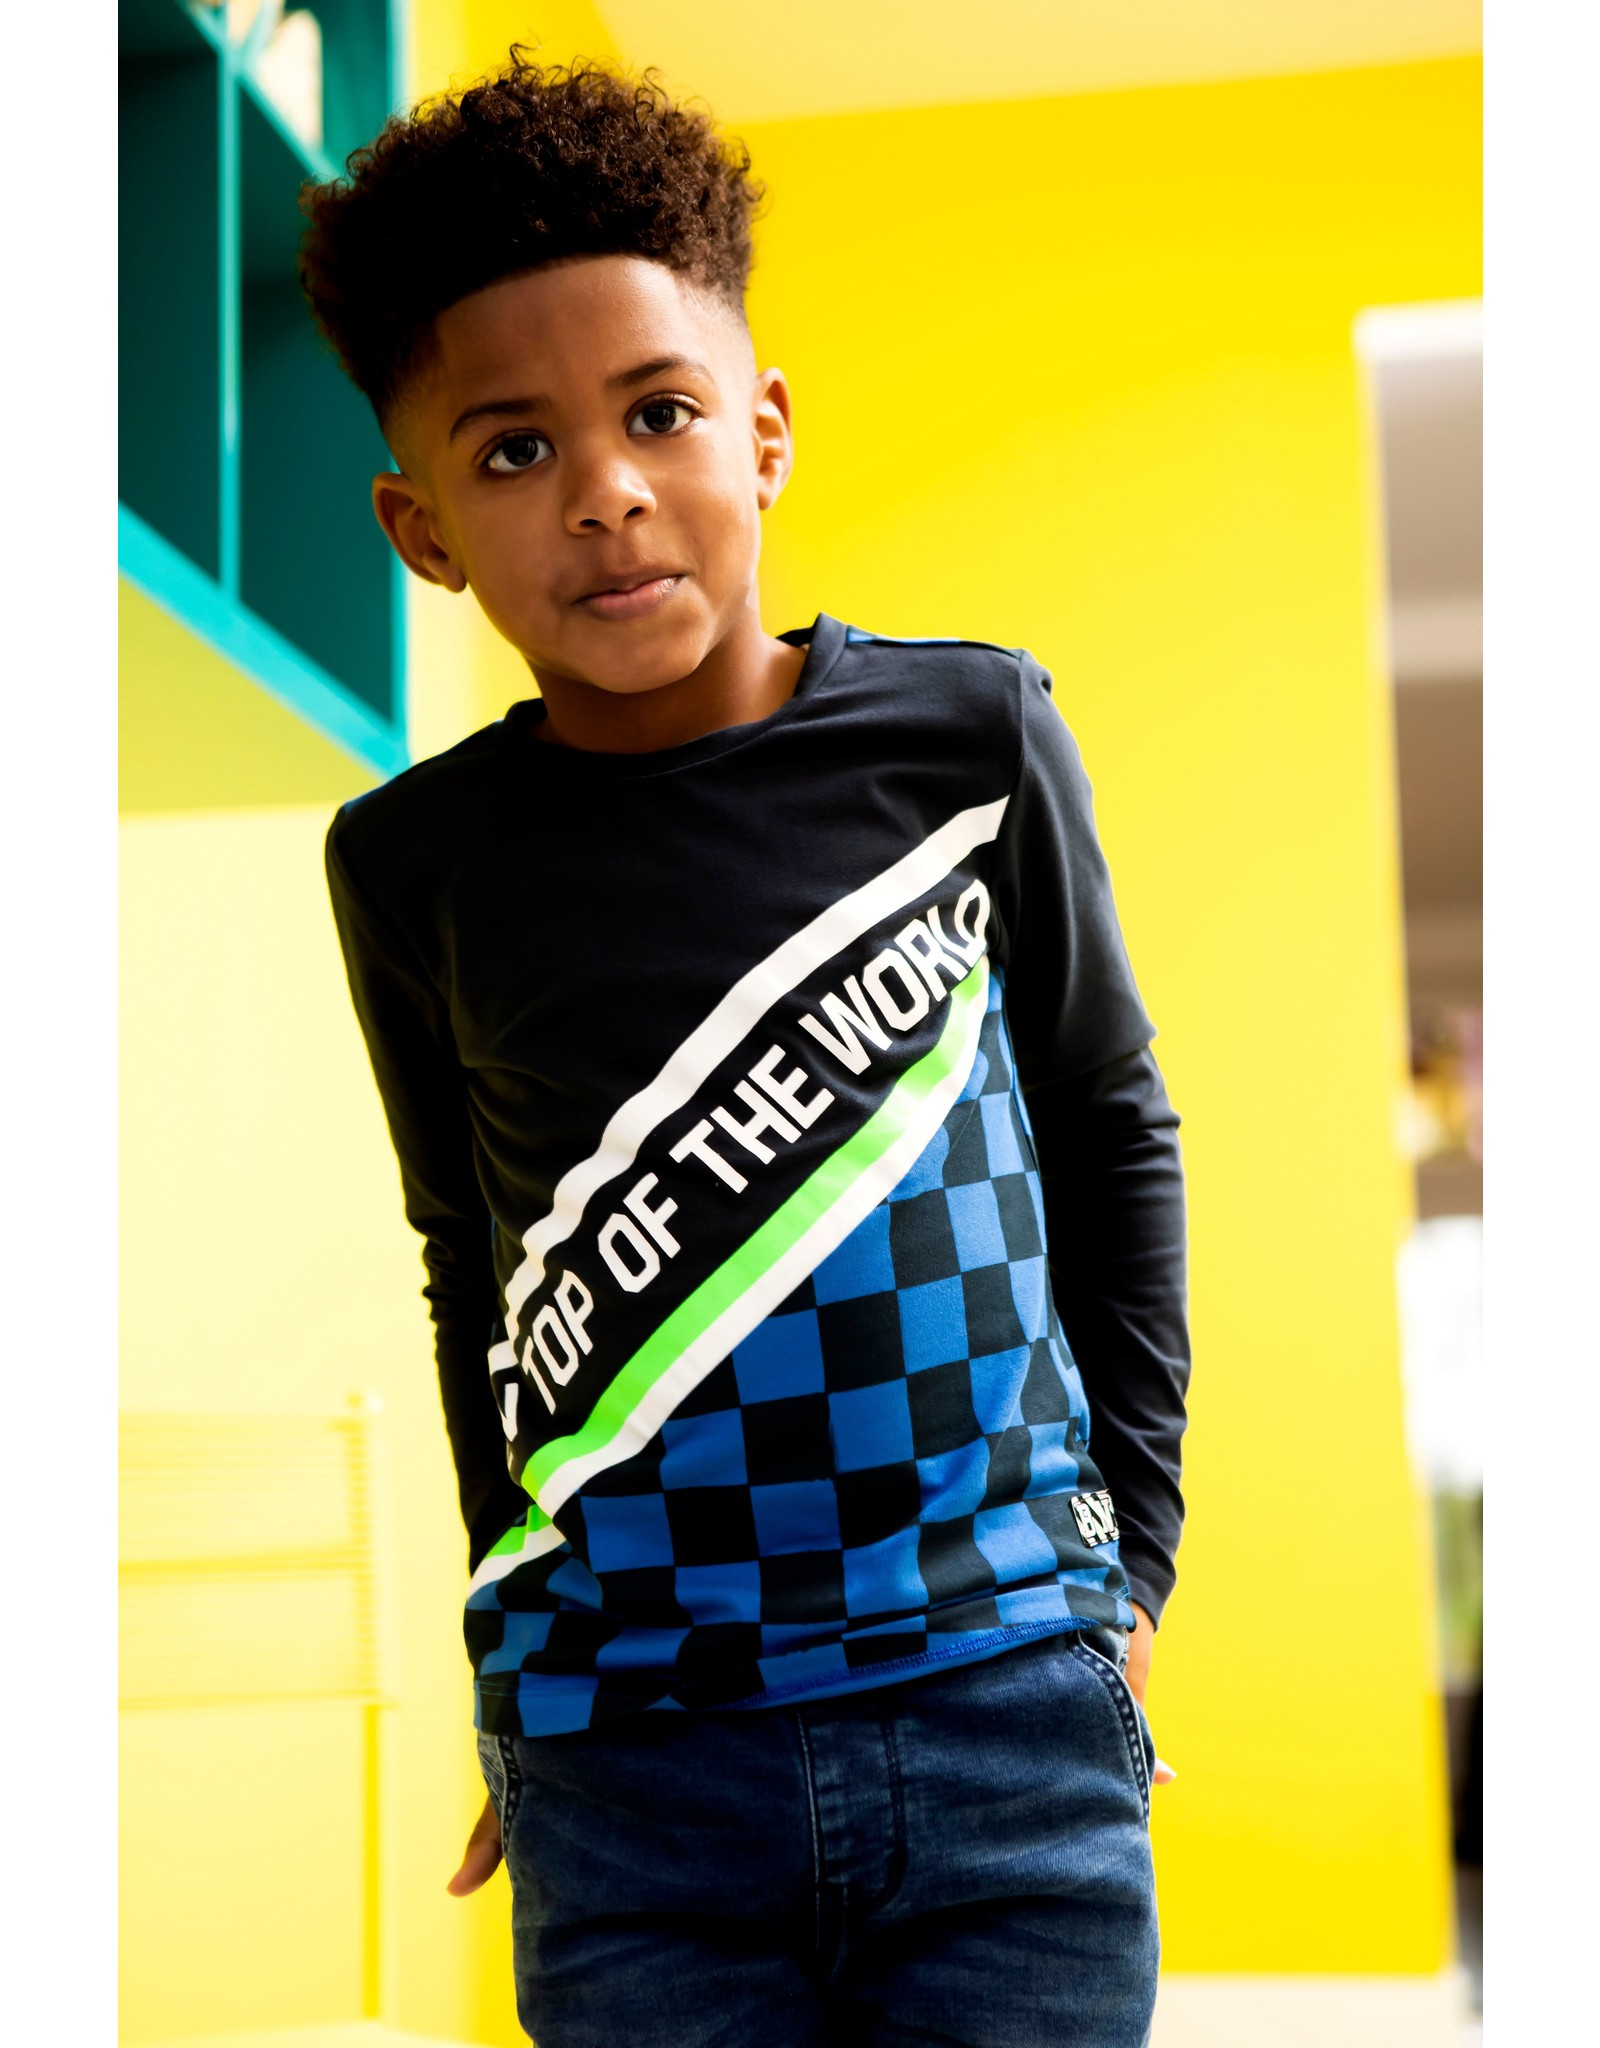 B-Nosy Boys 2-panel t-shirt with aop check part and slanted artwork , Oxford blue